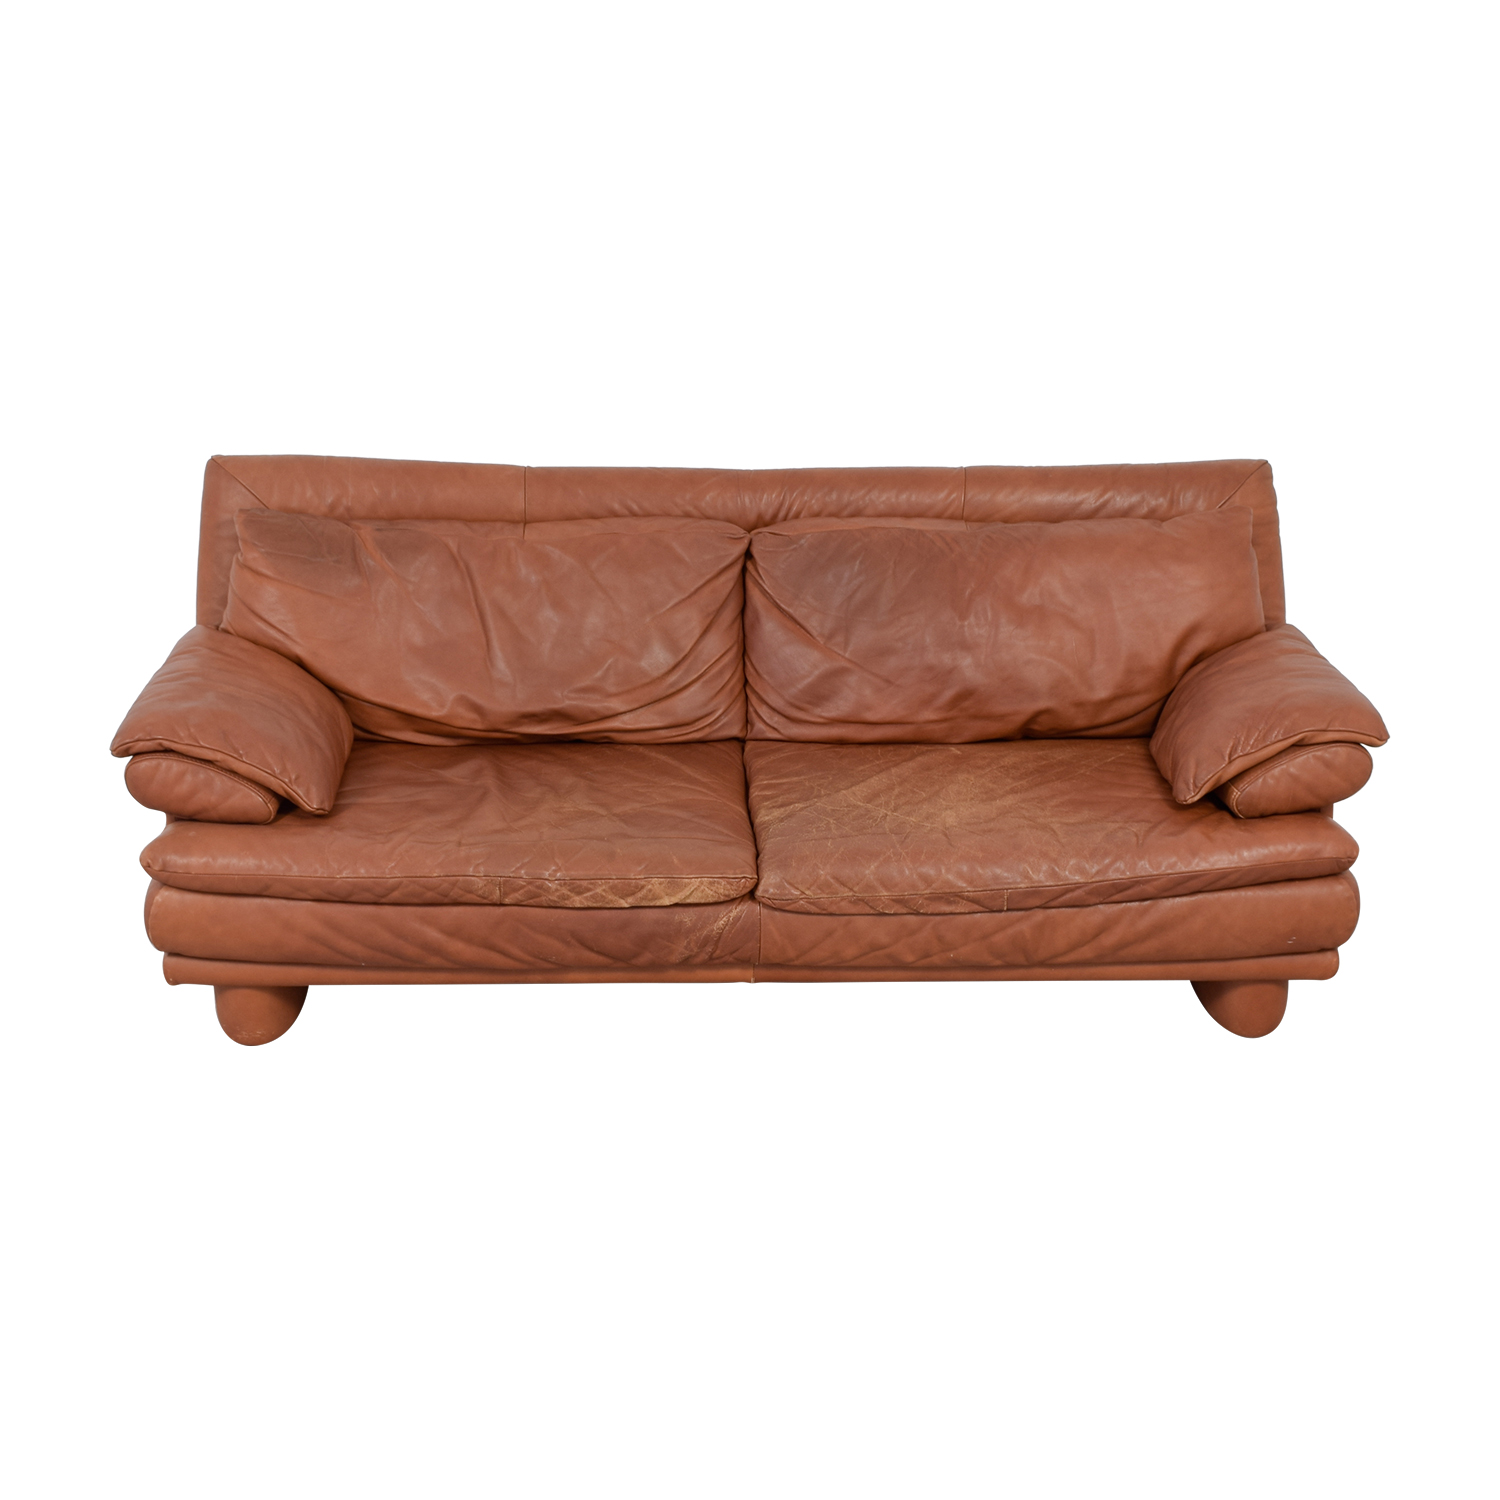 Maurice Villency Maurice Villency Brown Leather Sofa Classic Sofas